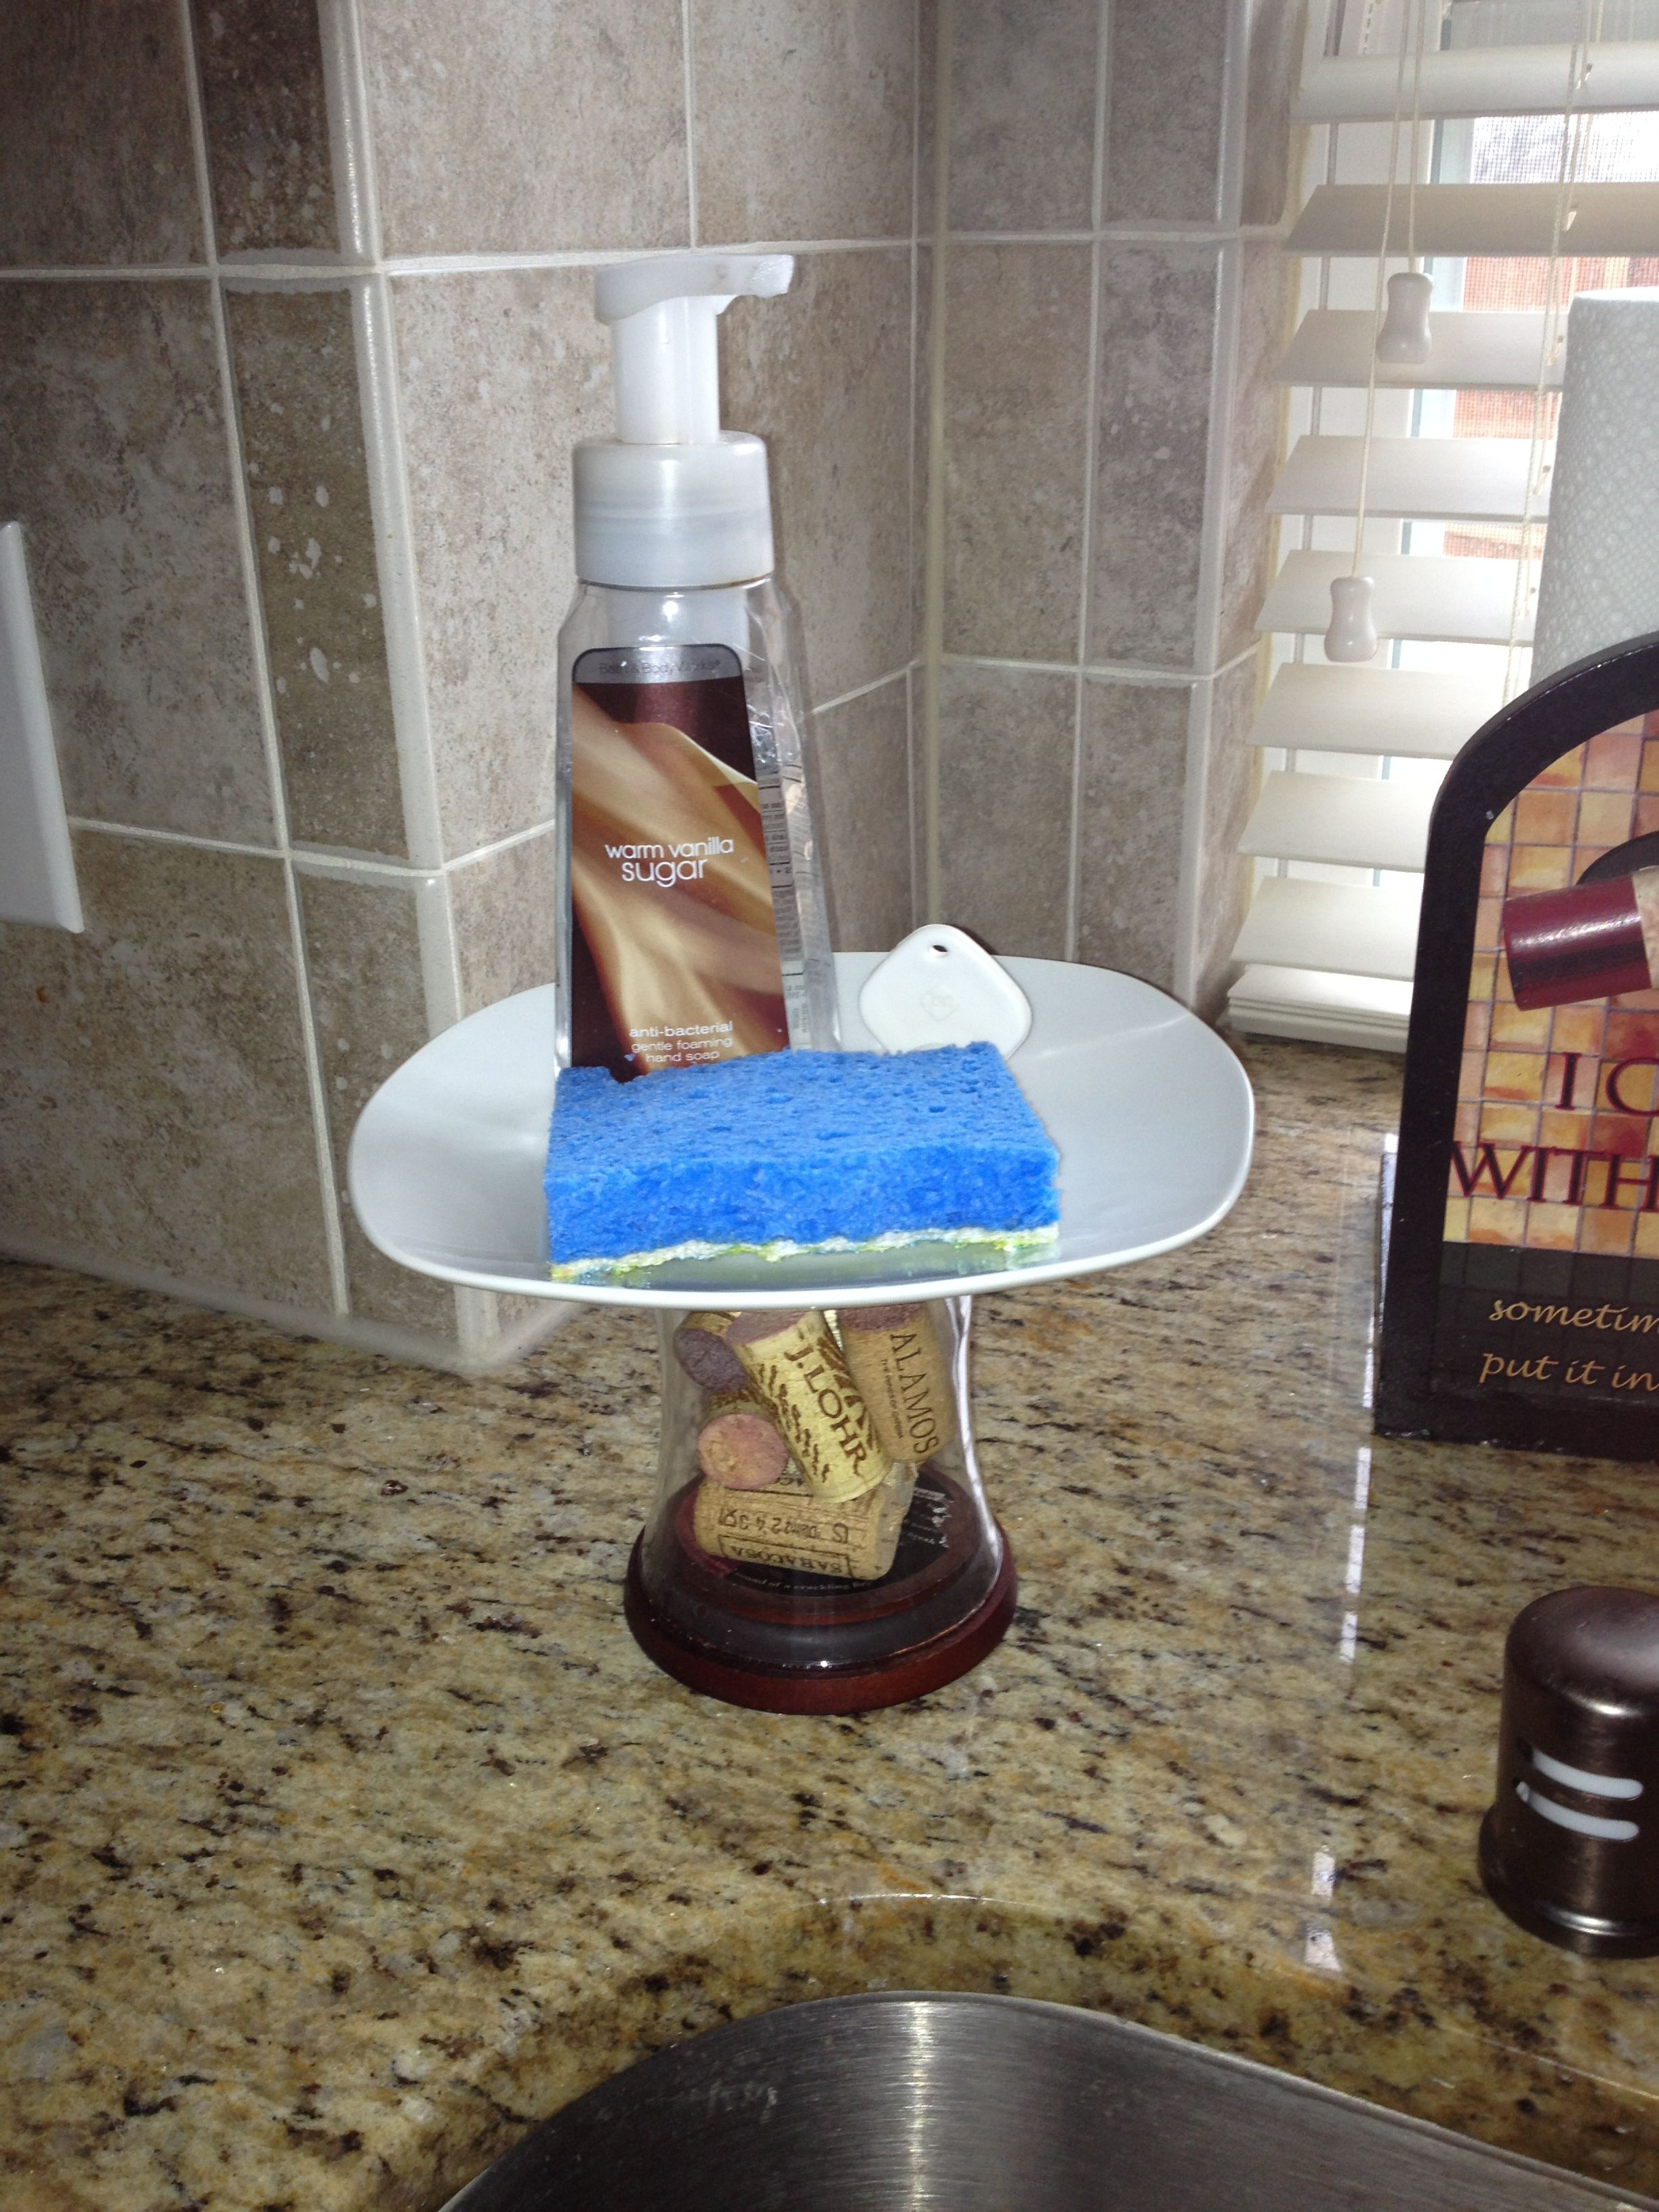 Diy Kitchen Soap Stand Instead Of Using A Cake Stand I